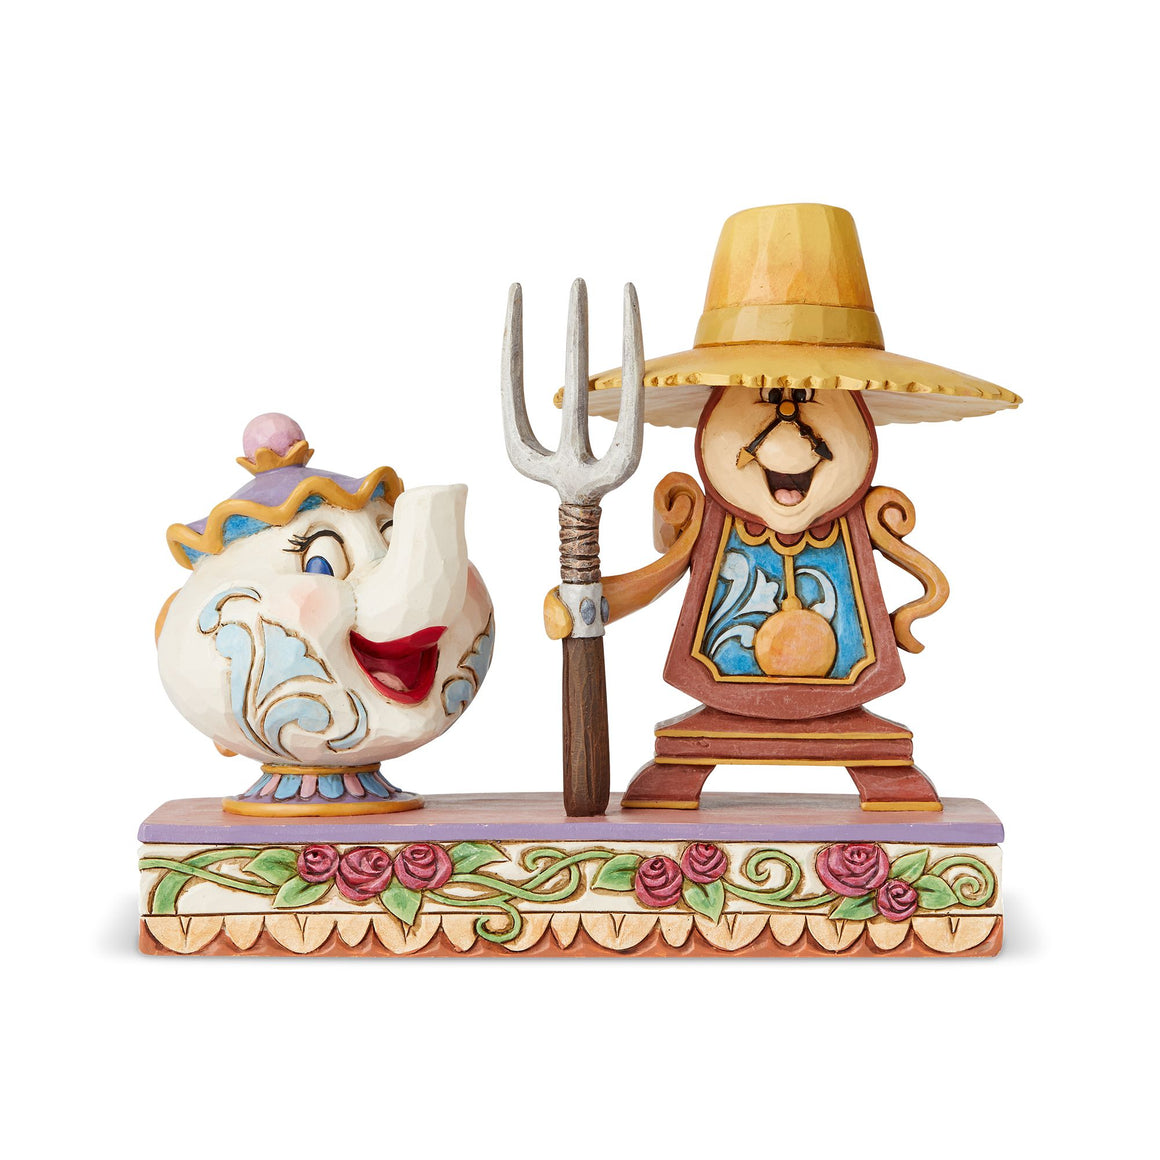 Disney Traditions by Jim Shore Workin Round the Clock - Mrs Potts & Cogsworth